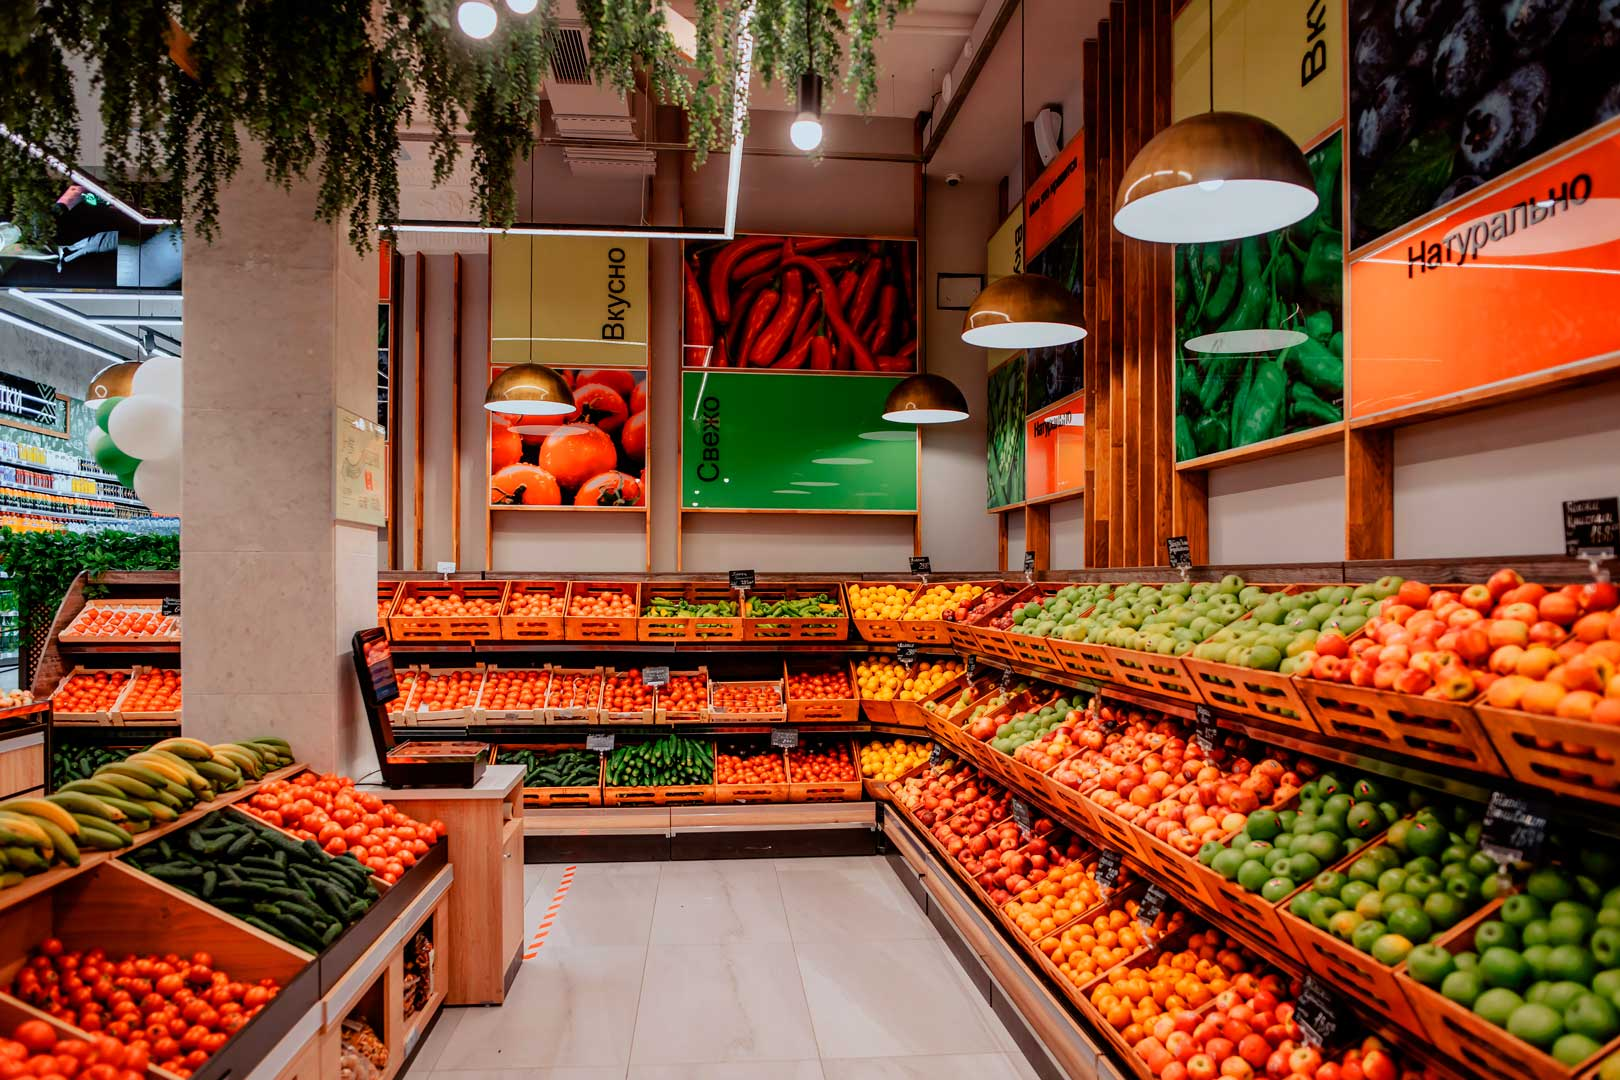 Specialized neutral counters for vegetables and fruit sales